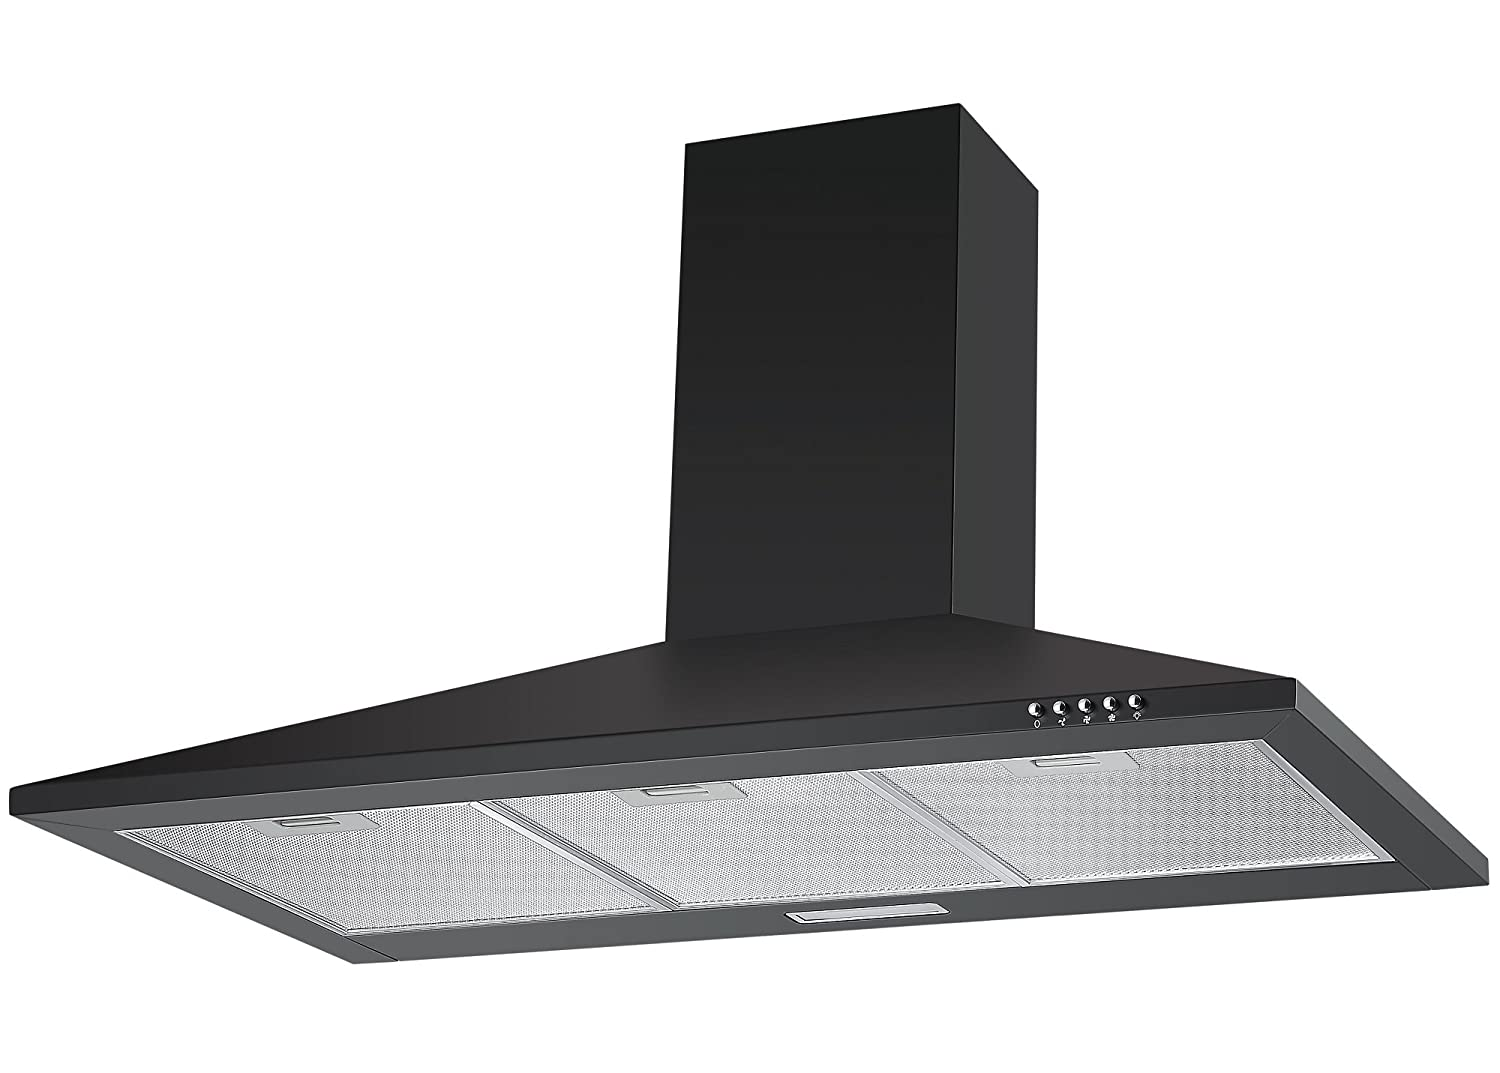 Cookology CH900BK 90cm Chimney Cooker Hood in Black | Wall Mounted Extractor Fan with LED Lighting [Energy Class C]